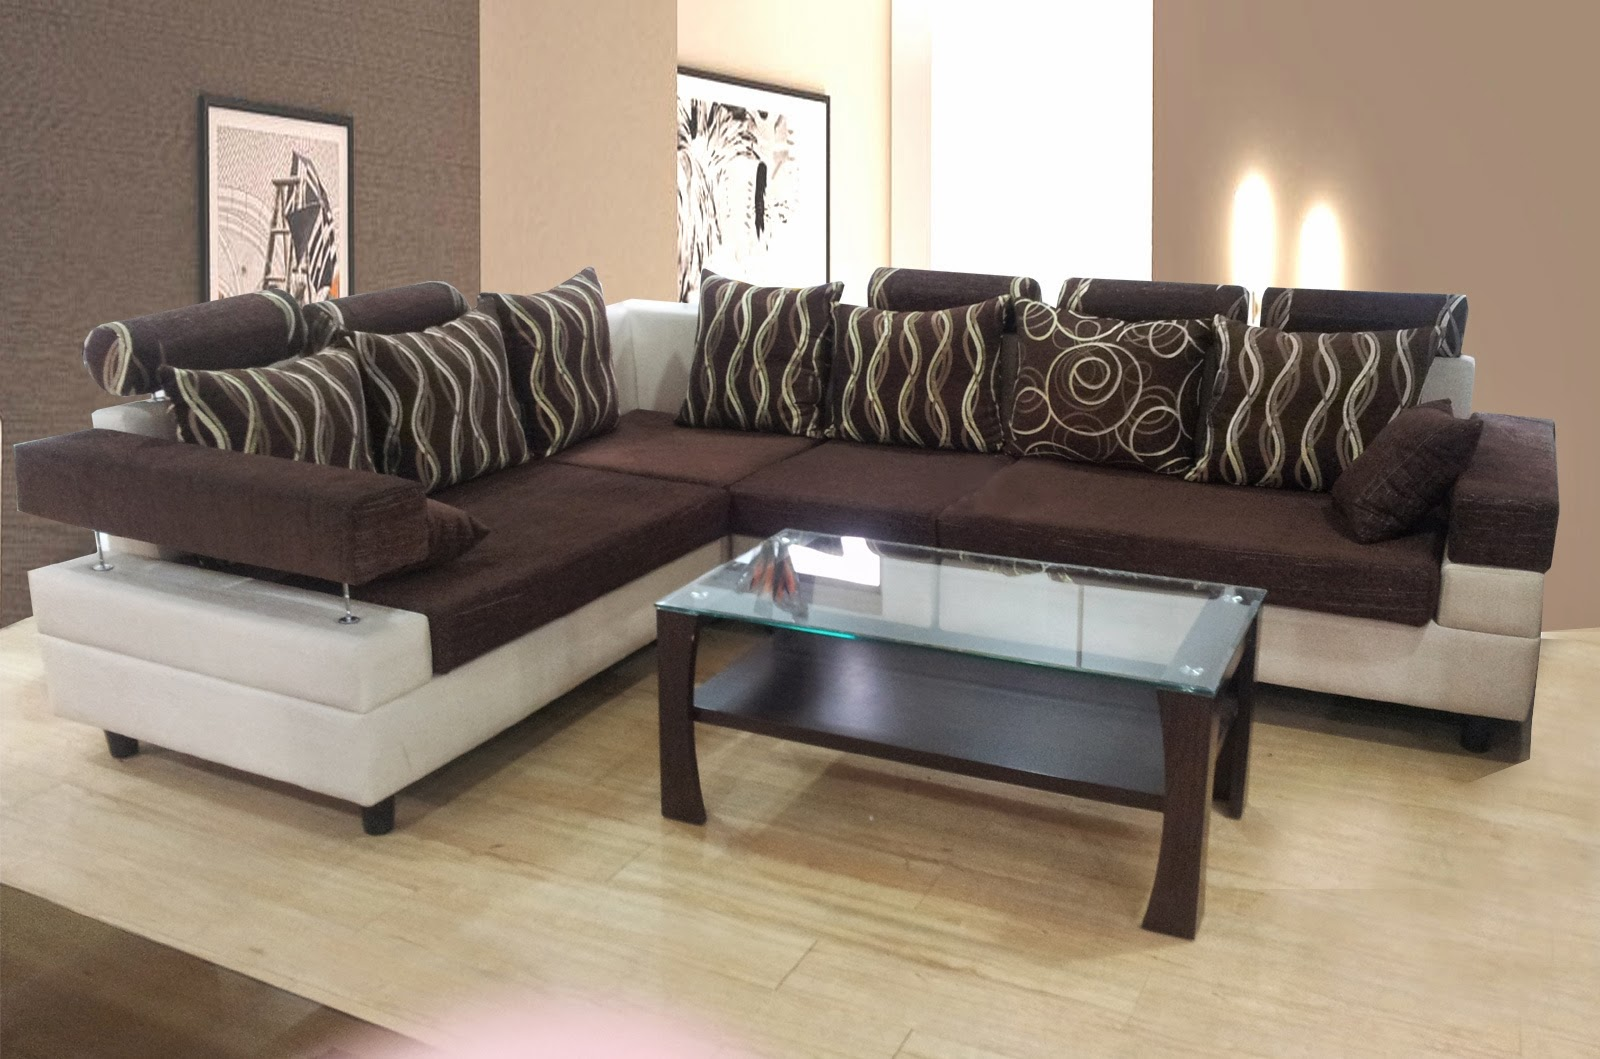 Sofa Sets Modern Designs Flexsteel Capitol Review Latest In Kenya Design